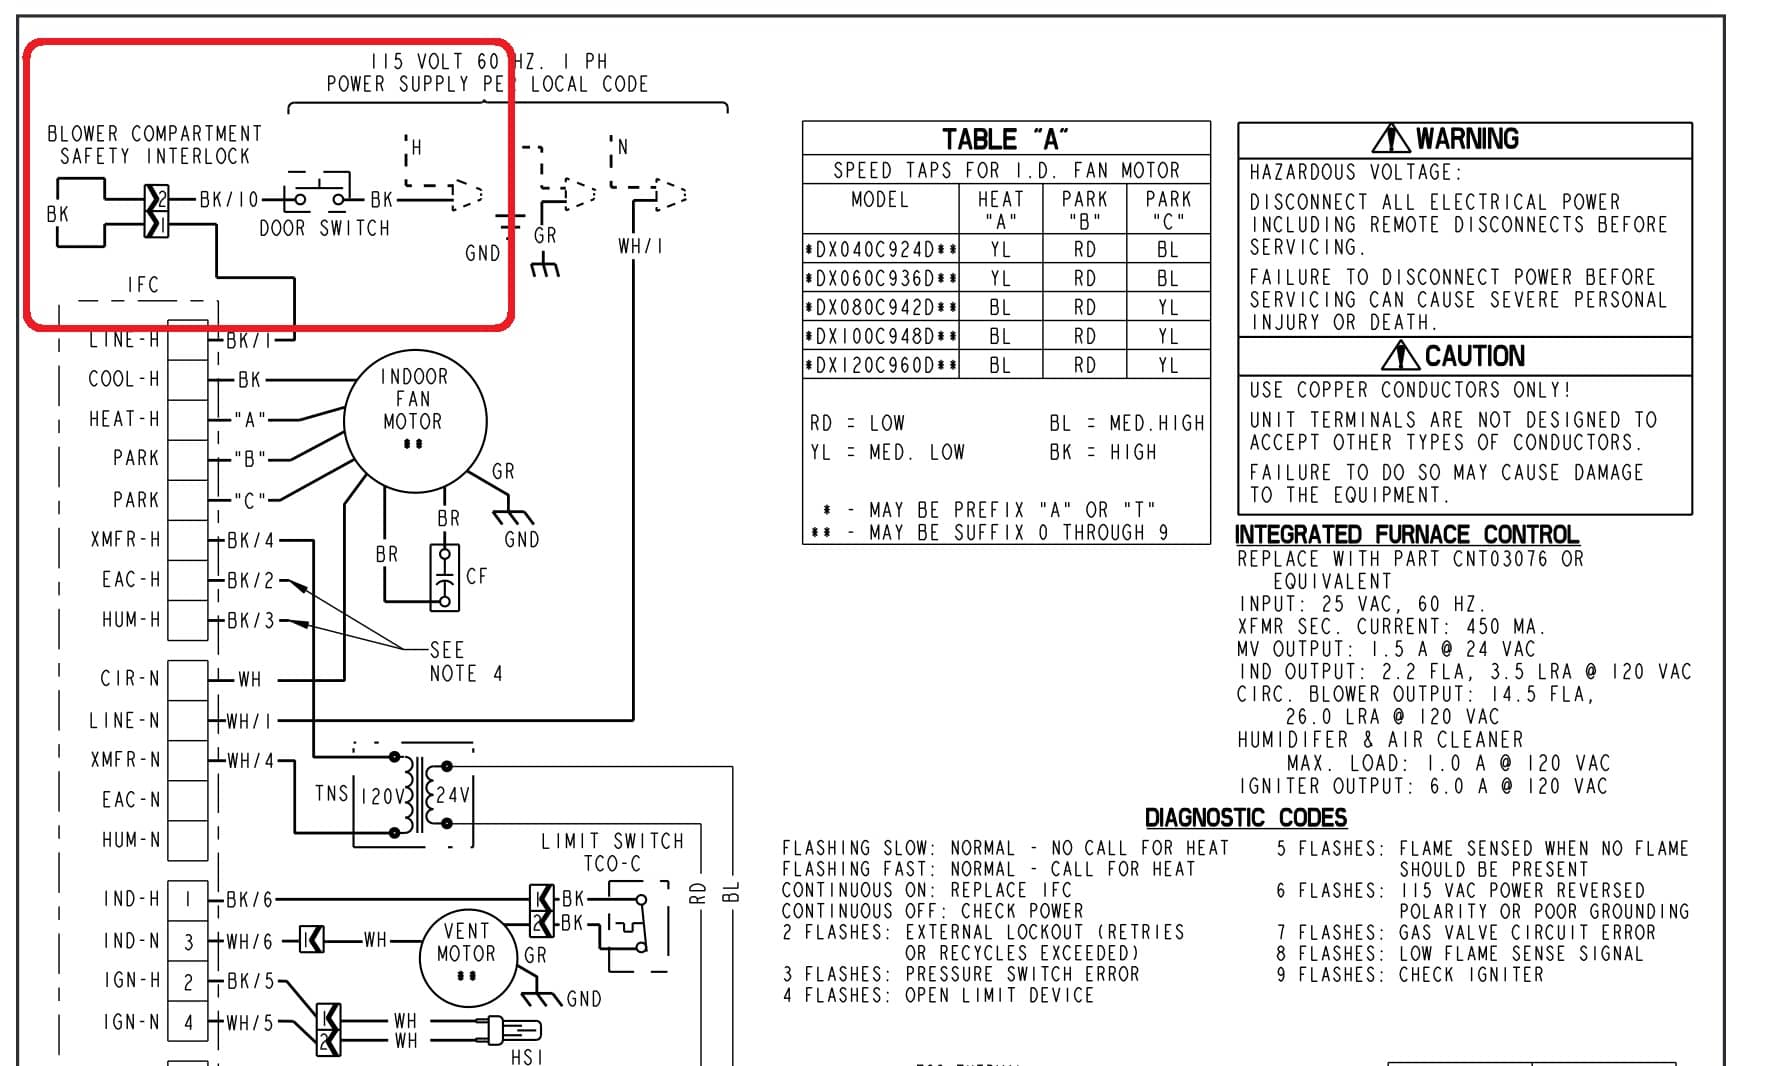 P 0996b43f803752ee further Electrical Wiring Diagrams For Air Conditioner Split System Air Conditioner Outdoor Section Air Conditioner Wiring Diagram York Wiring Diagrams Air Conditioners in addition Blower Door Interlock Switch likewise What Is Vfd How It Works 964803 further 7a714 C280 Need Picture Diagram Secondary Air Flow. on wiring diagram for a ac unit